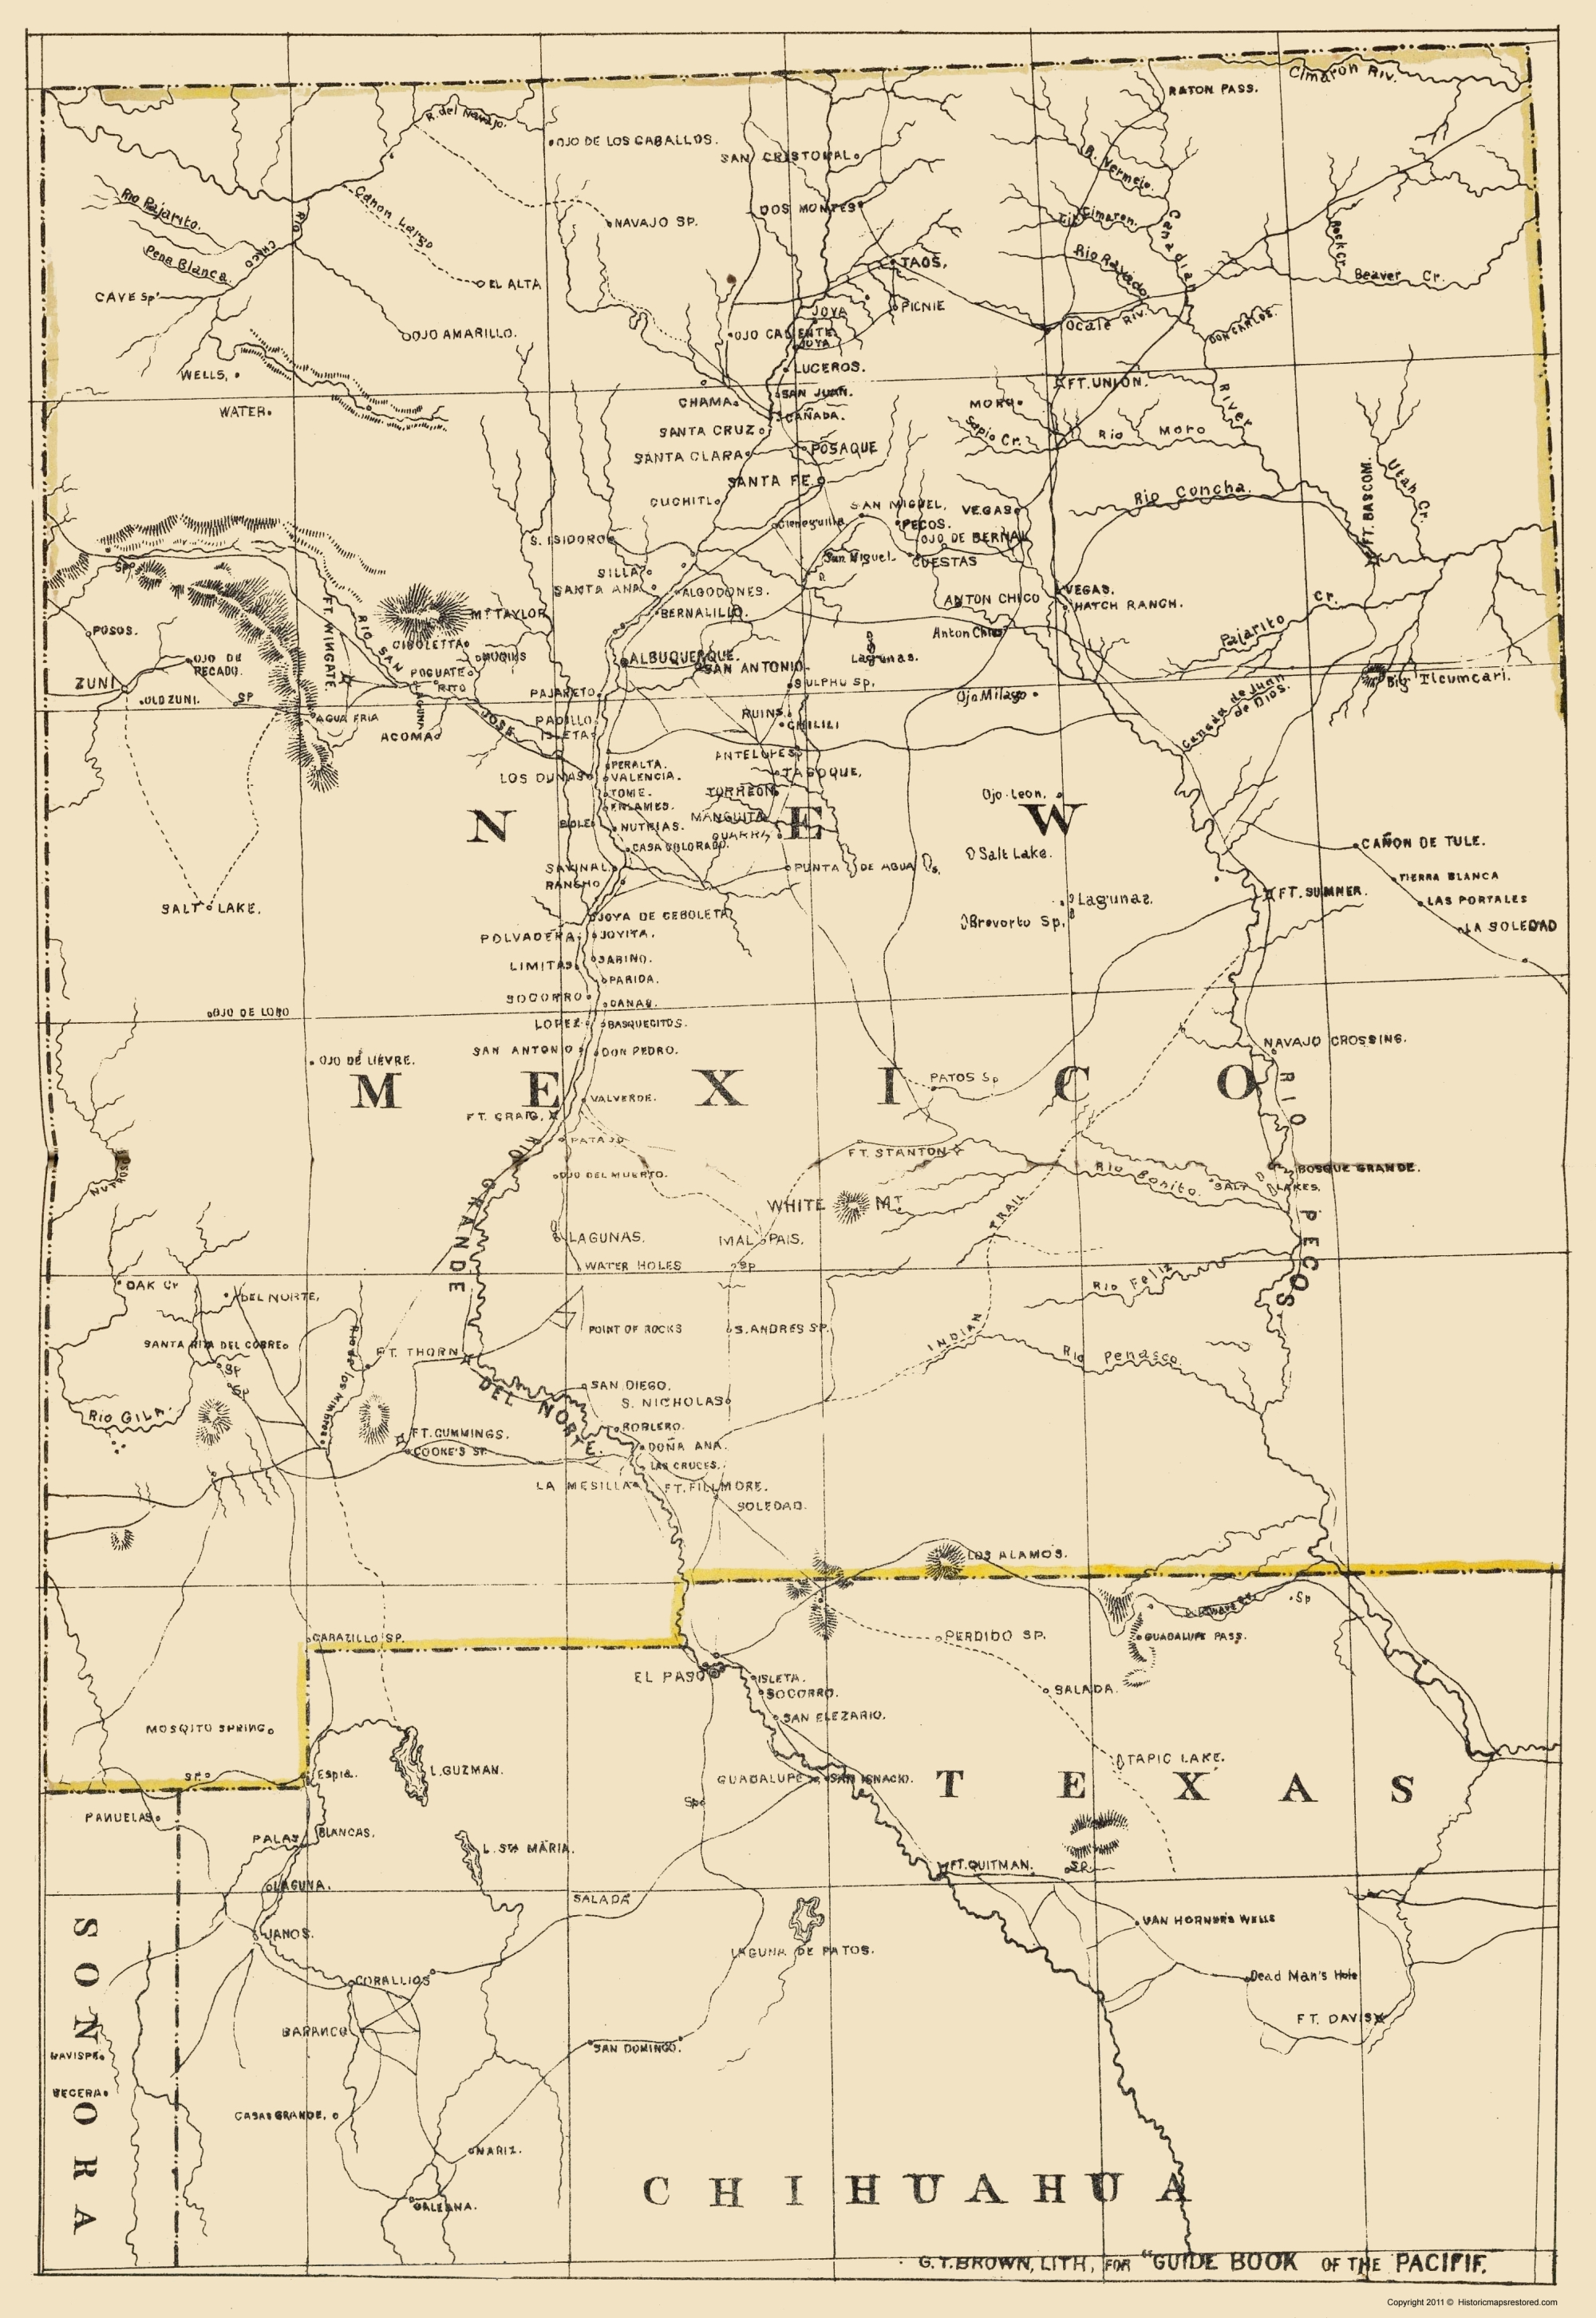 Old State Map - New Mexico - Holdredge 1866 - 23 x 33.41